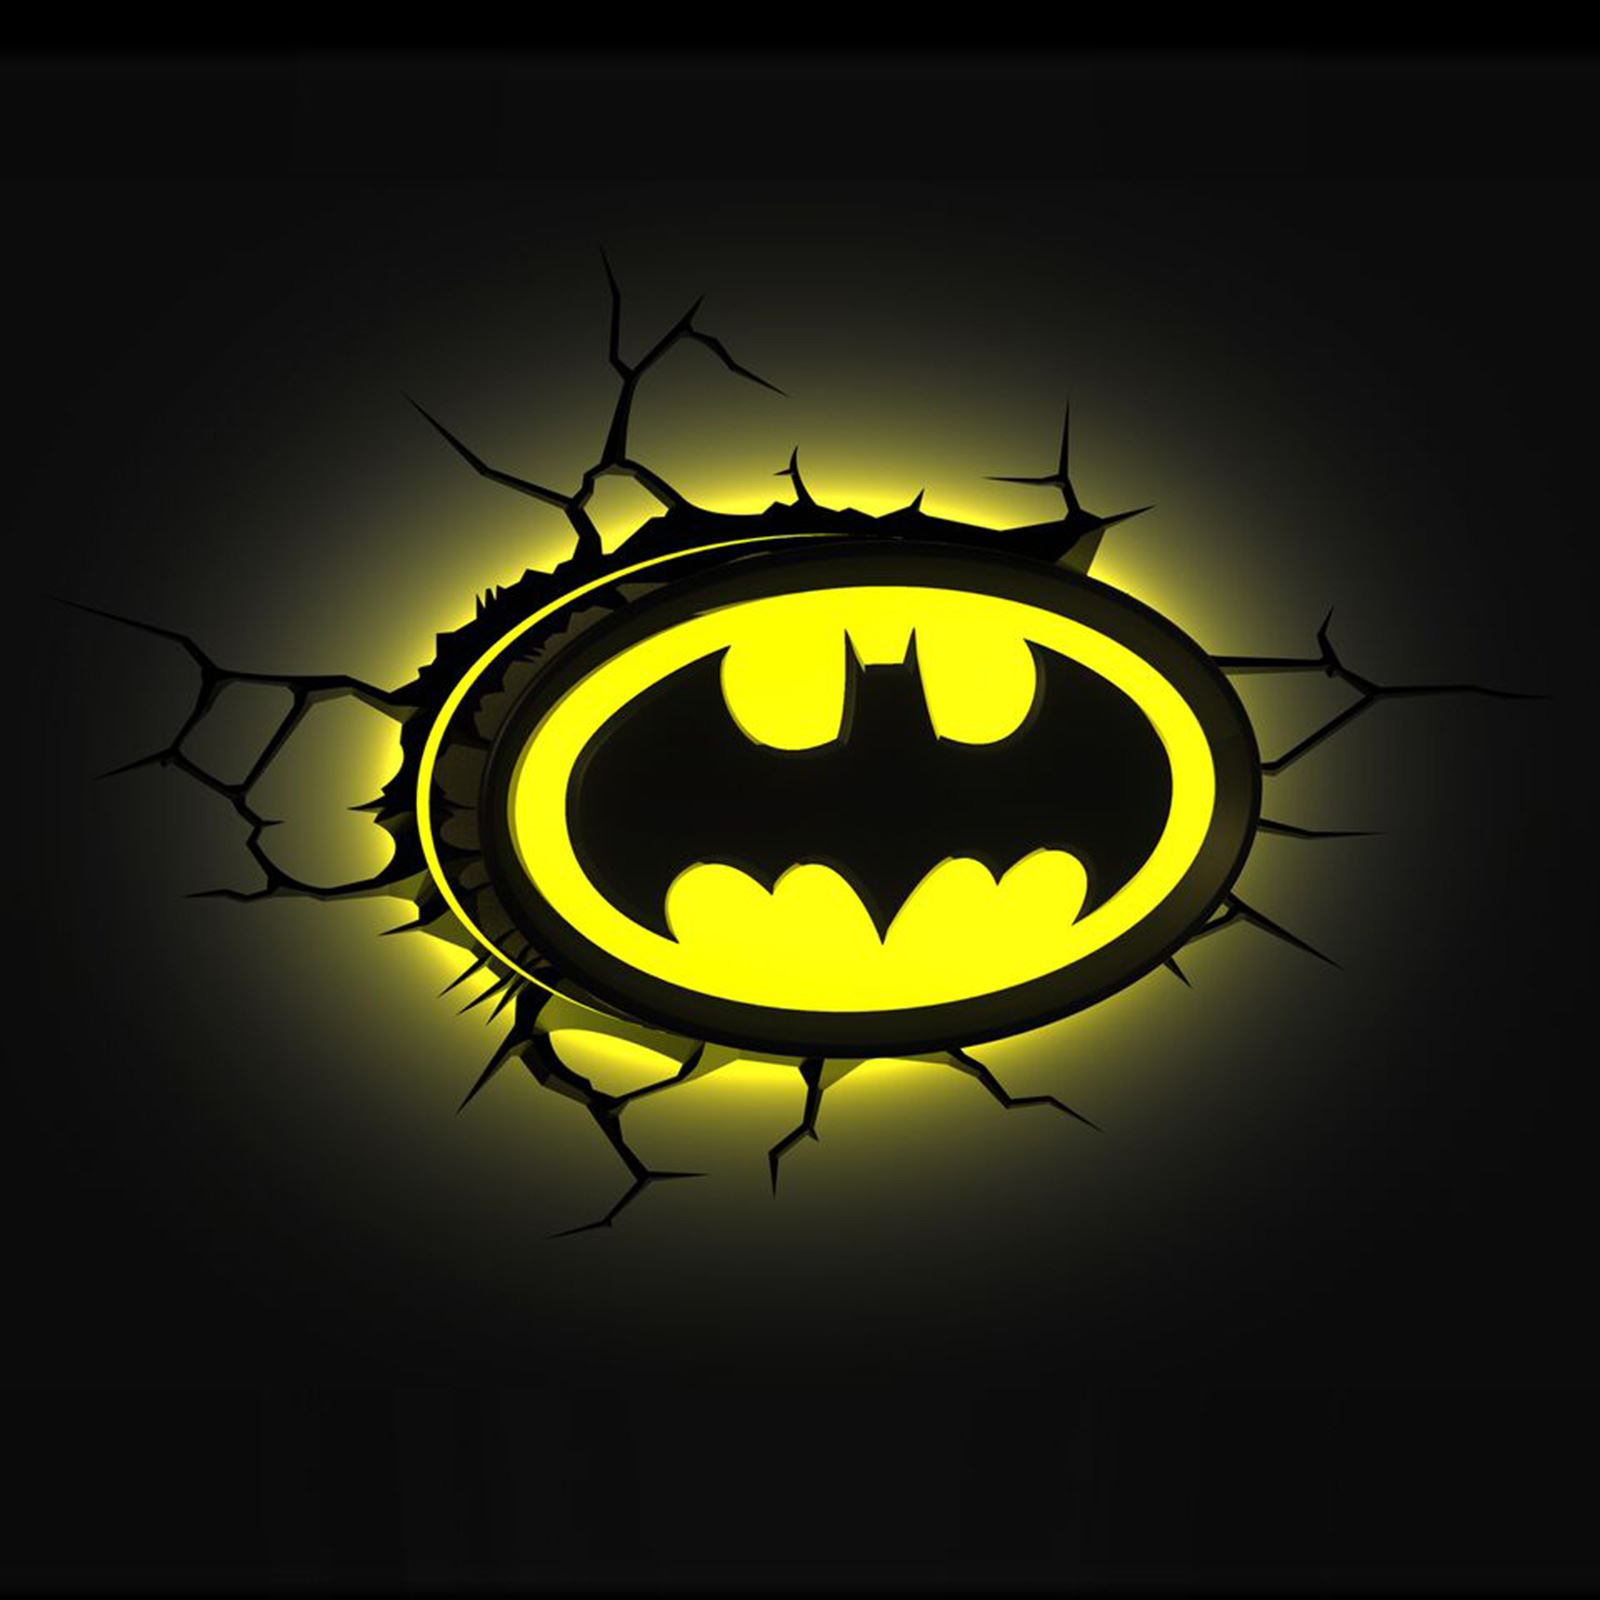 Batman Wall Light Diy : BATMAN LOGO 3D LED WALL NIGHT LIGHT NEW DC COMICS BEDROOM eBay